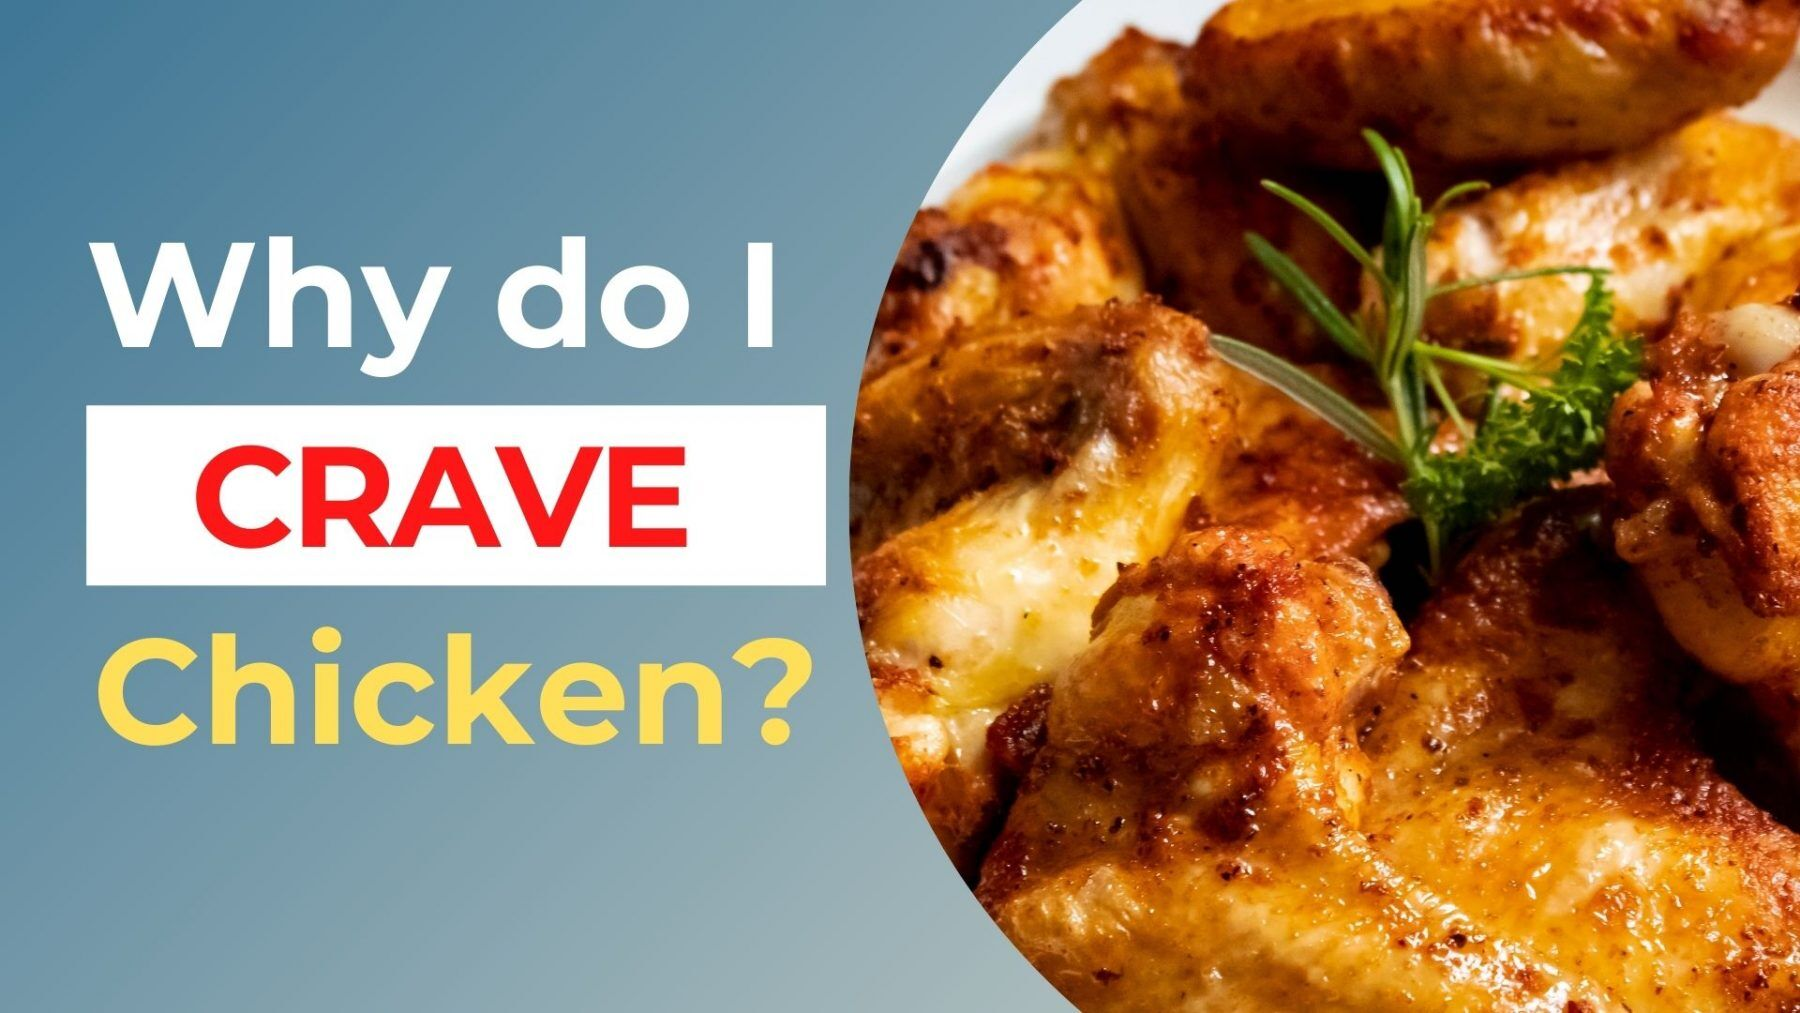 why do I crave chicken